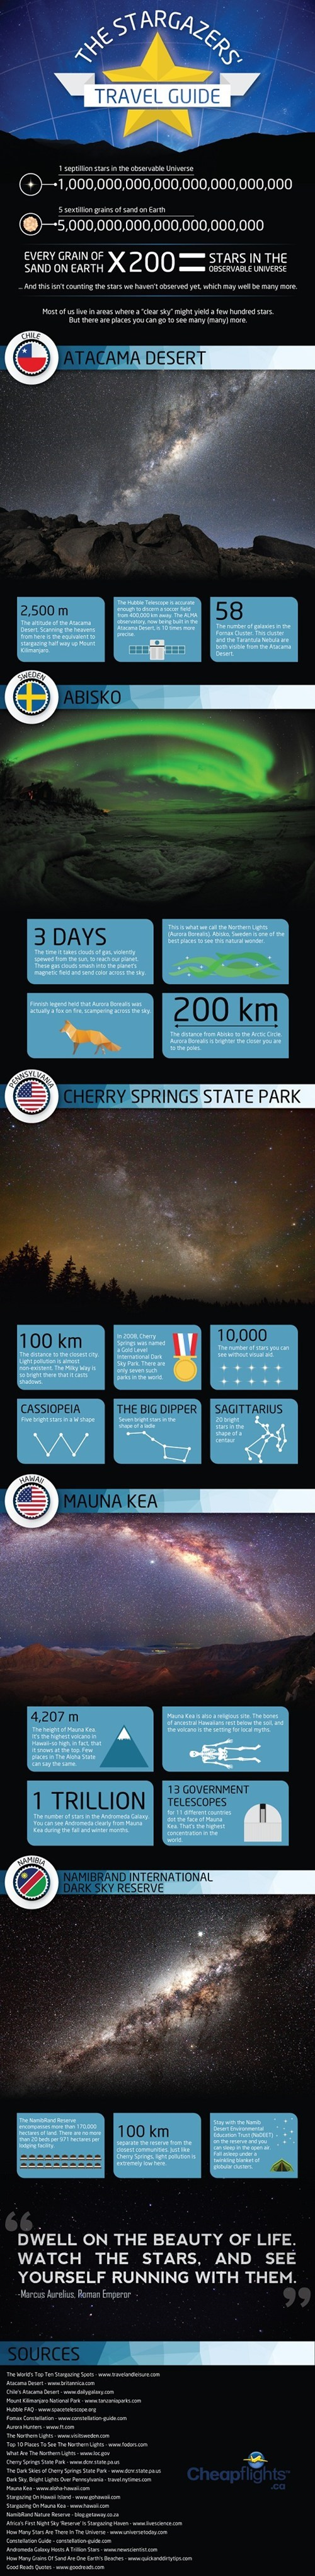 infographic,stars,Travel